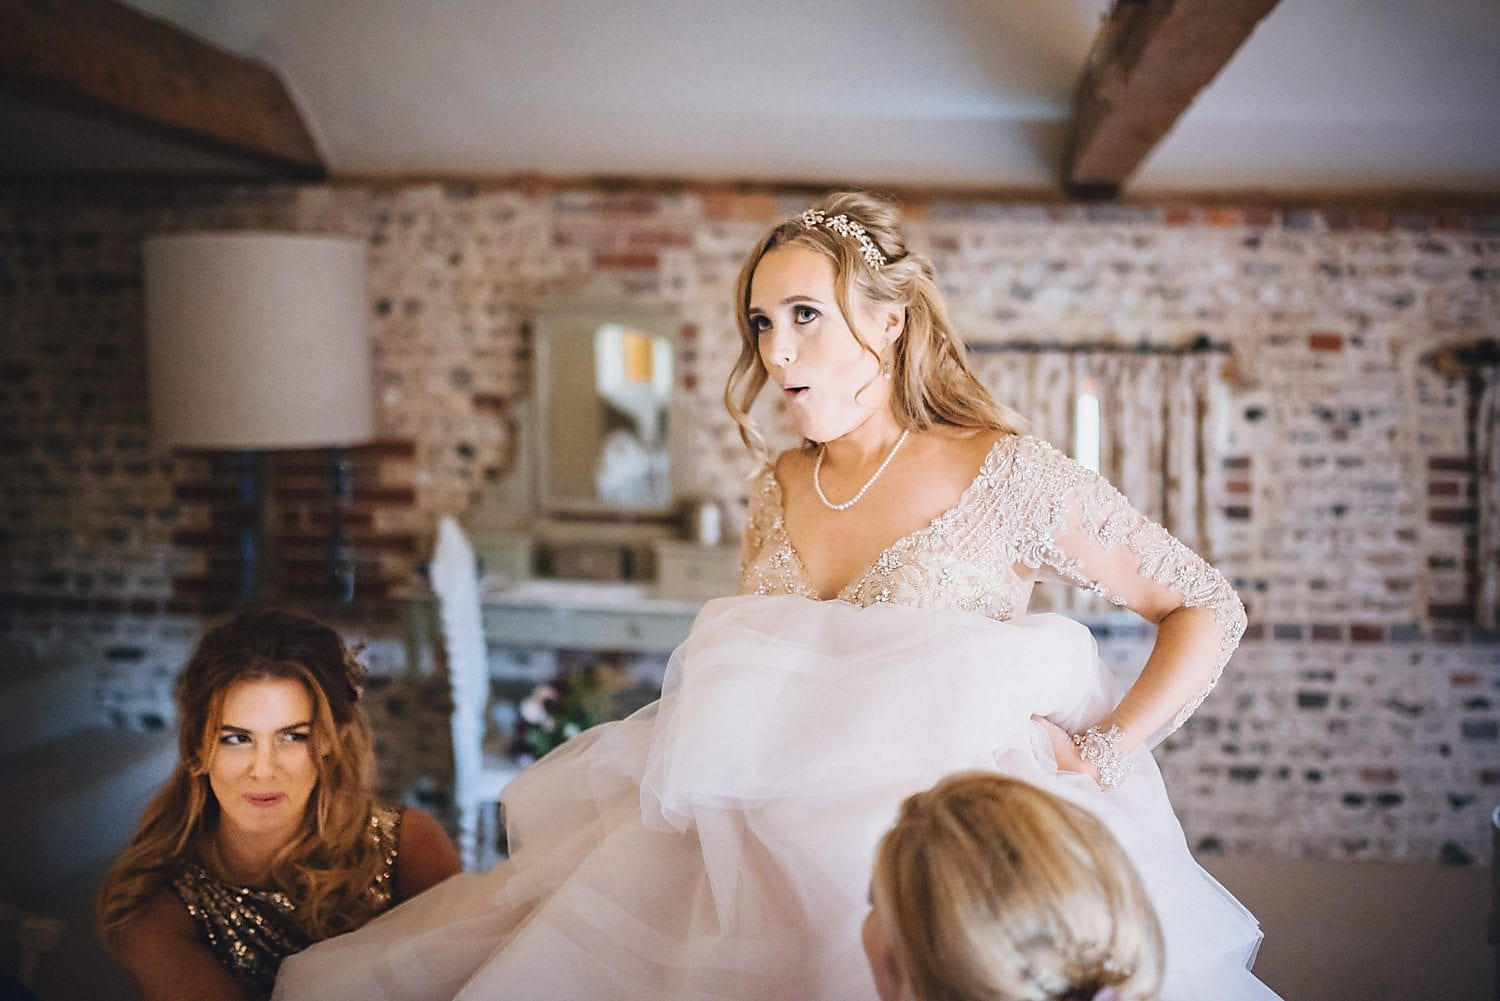 An action shot of the bride getting into her Martina Liana wedding gown